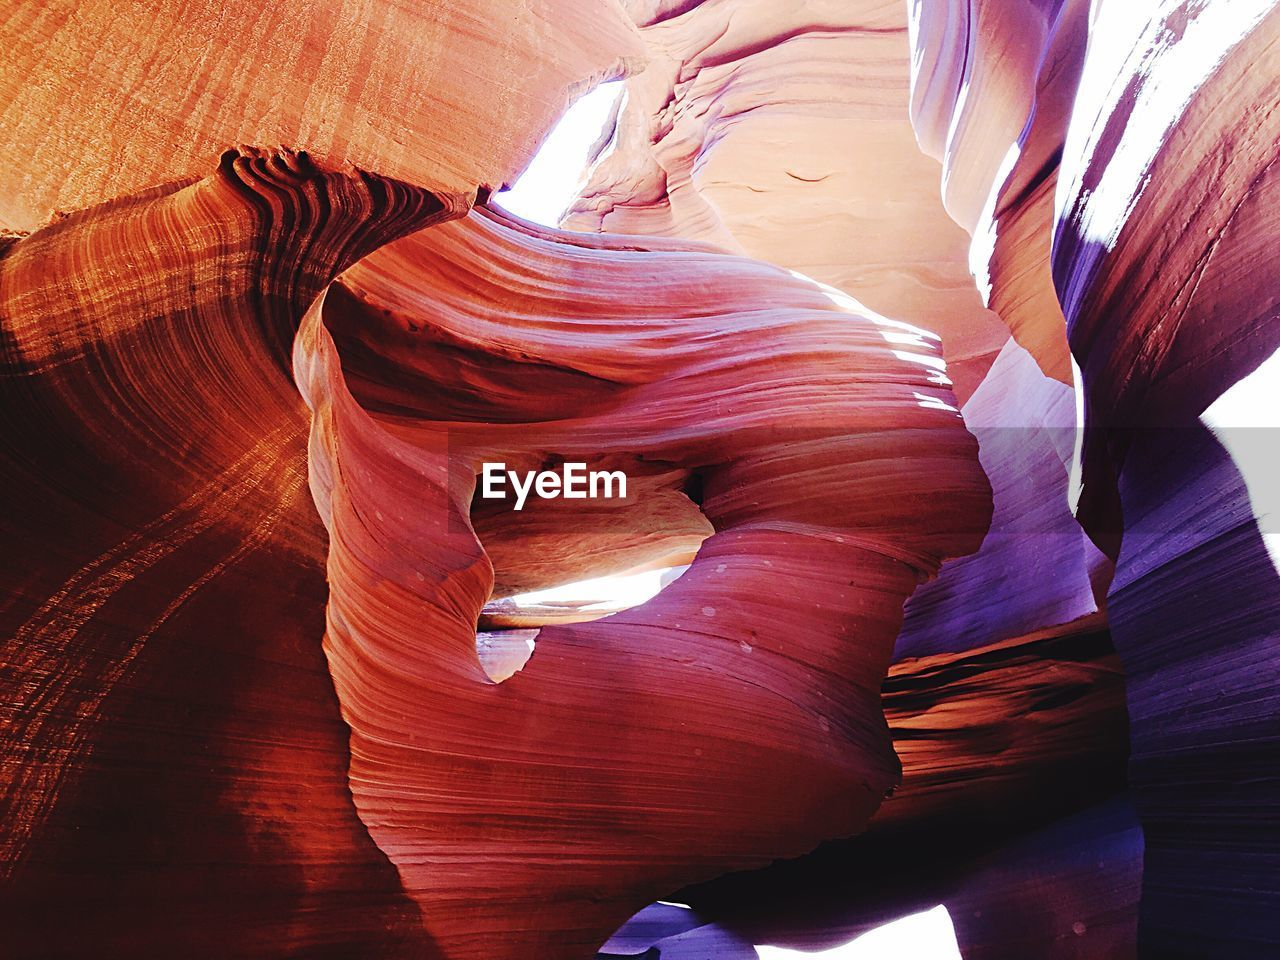 geology, rock formation, rock - object, nature, indoors, no people, beauty in nature, physical geography, day, travel destinations, cave, close-up